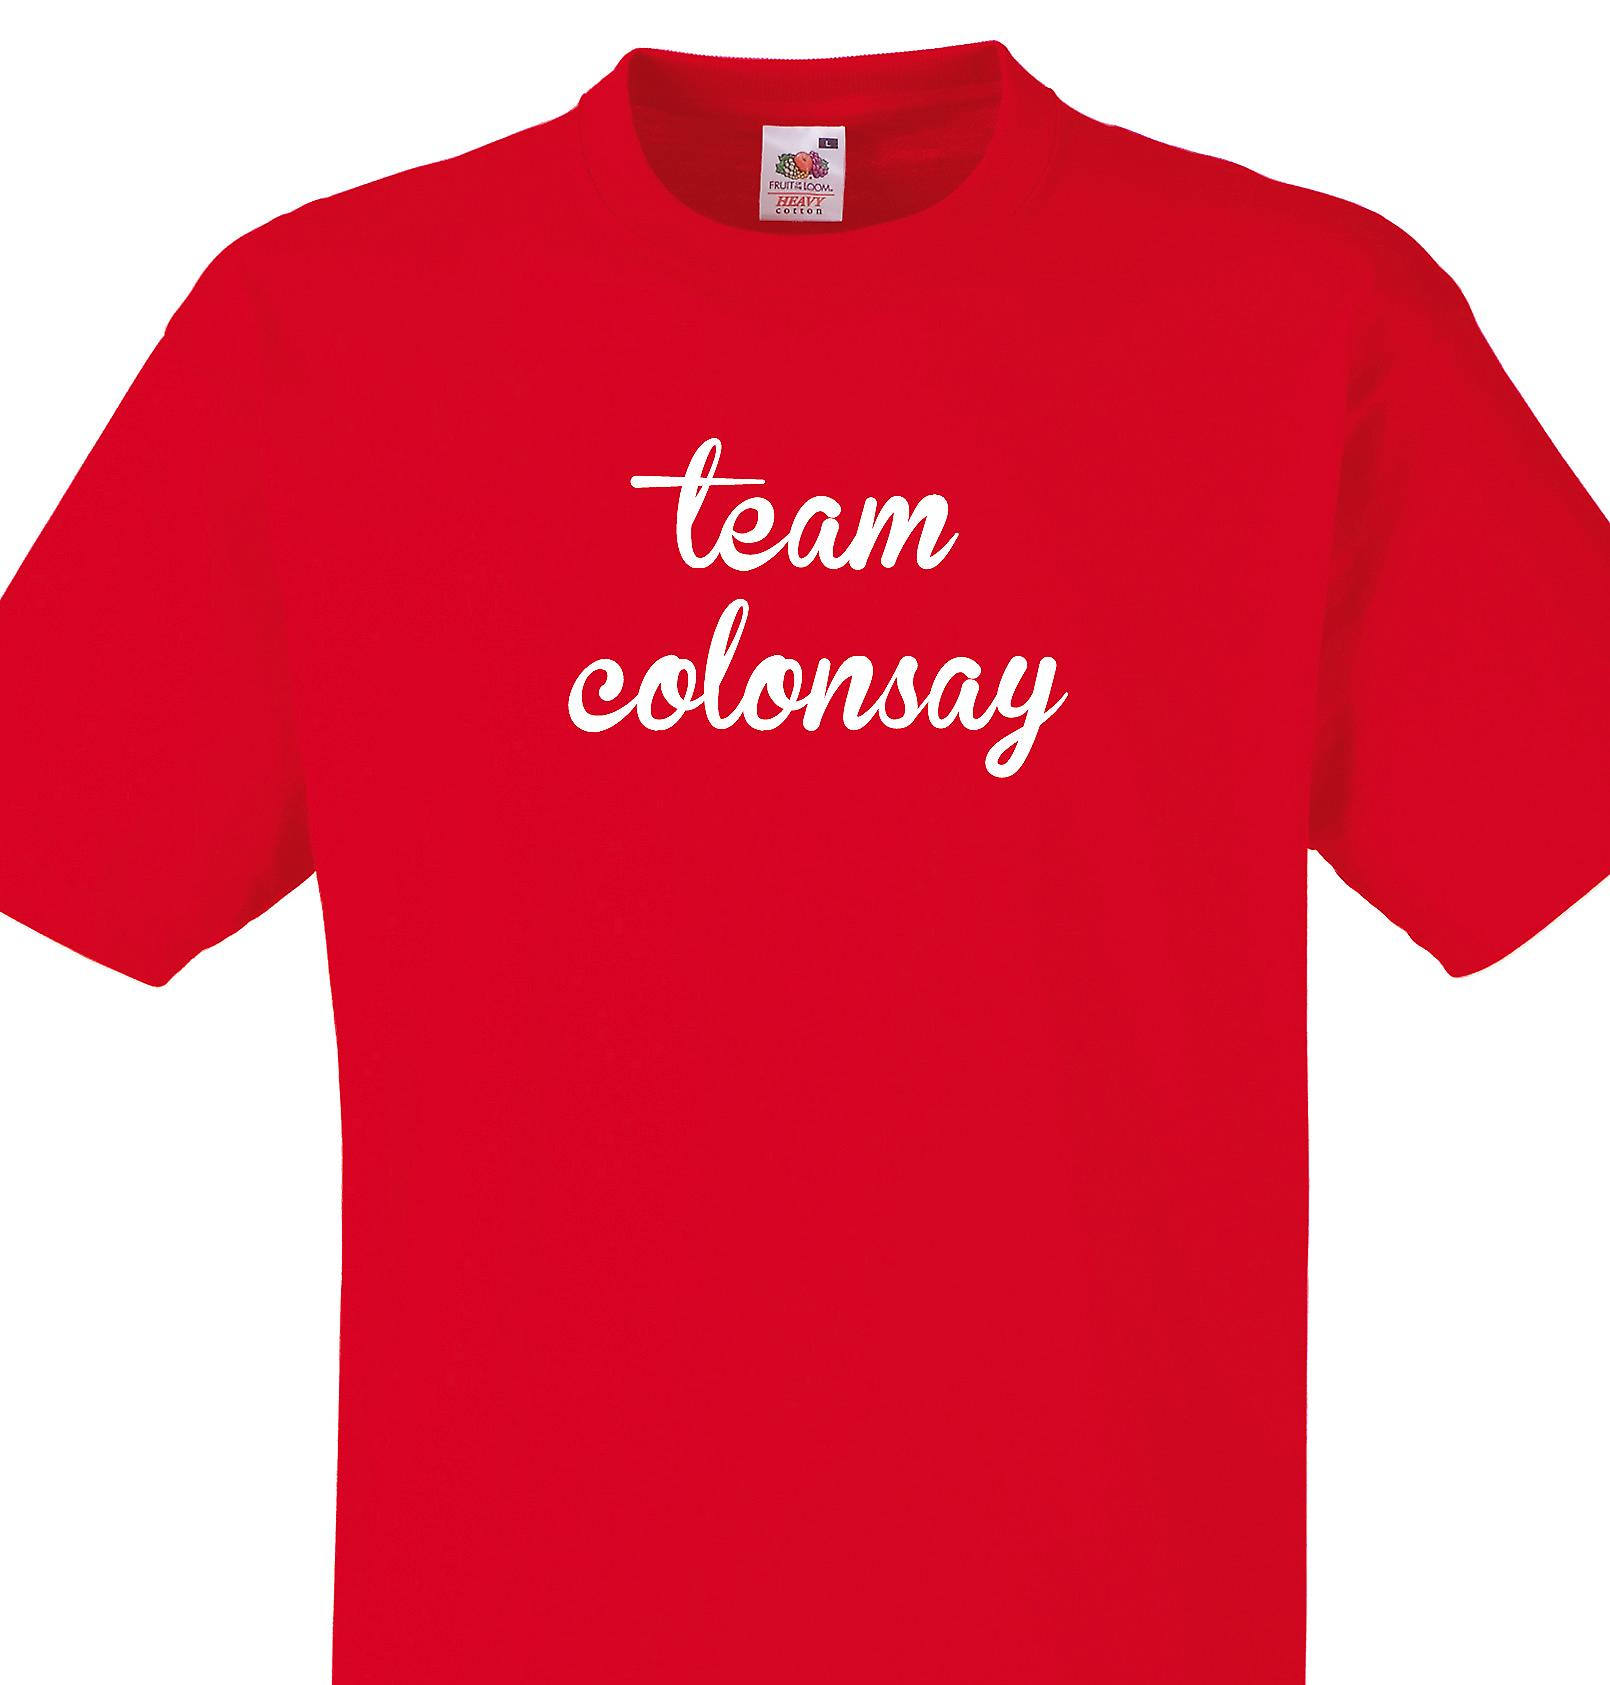 Team Colonsay Red T shirt